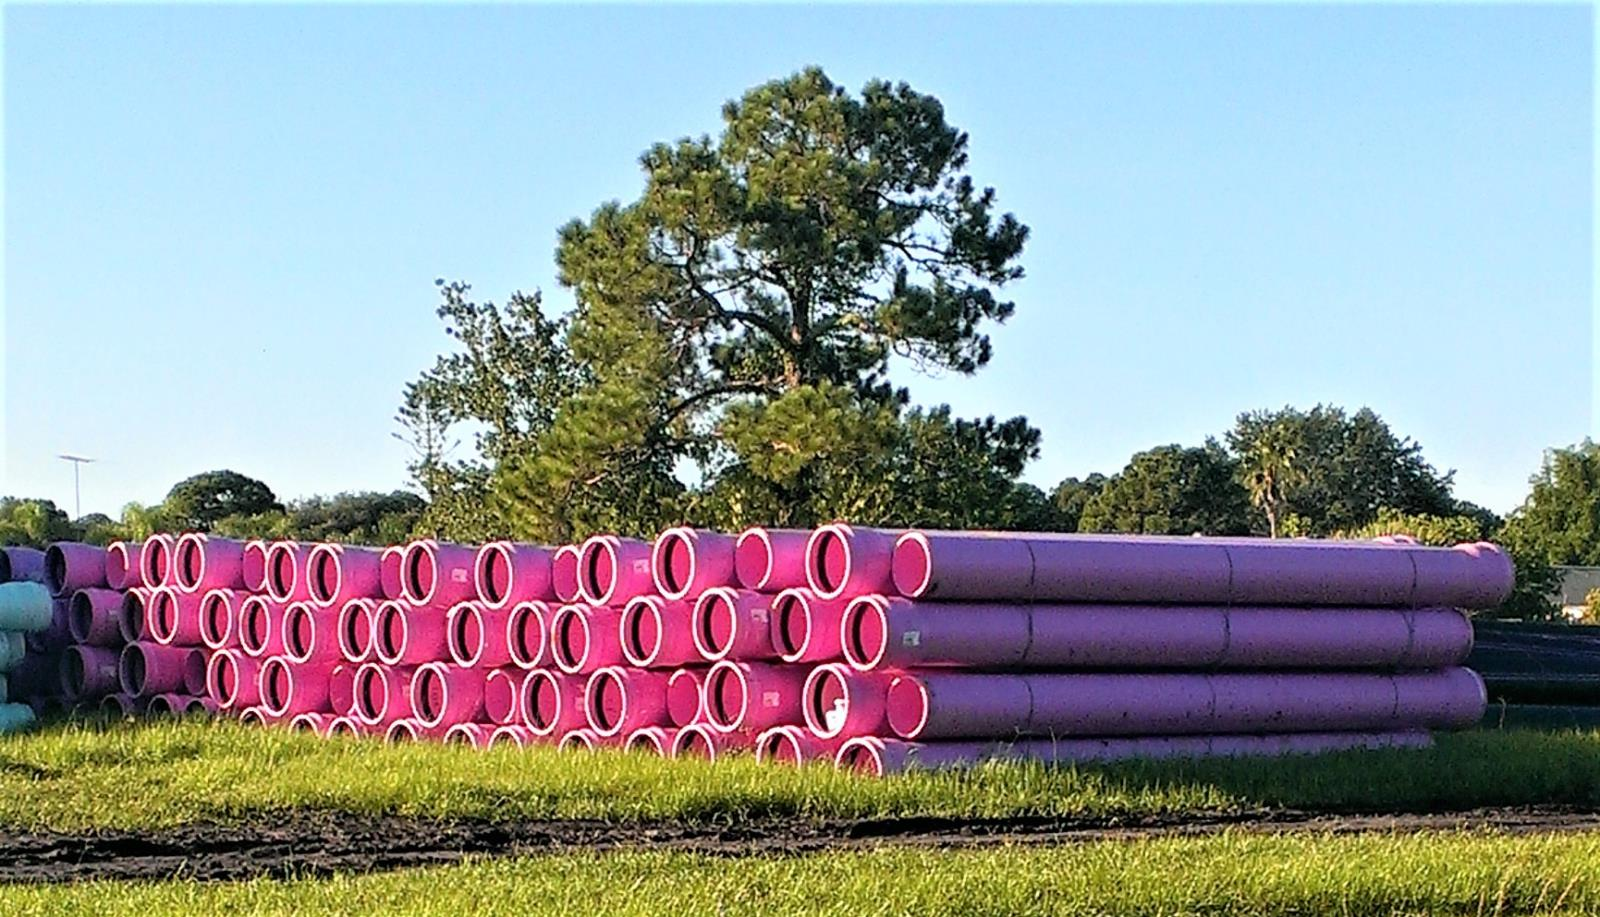 Pile of Purple Reuse Pipes